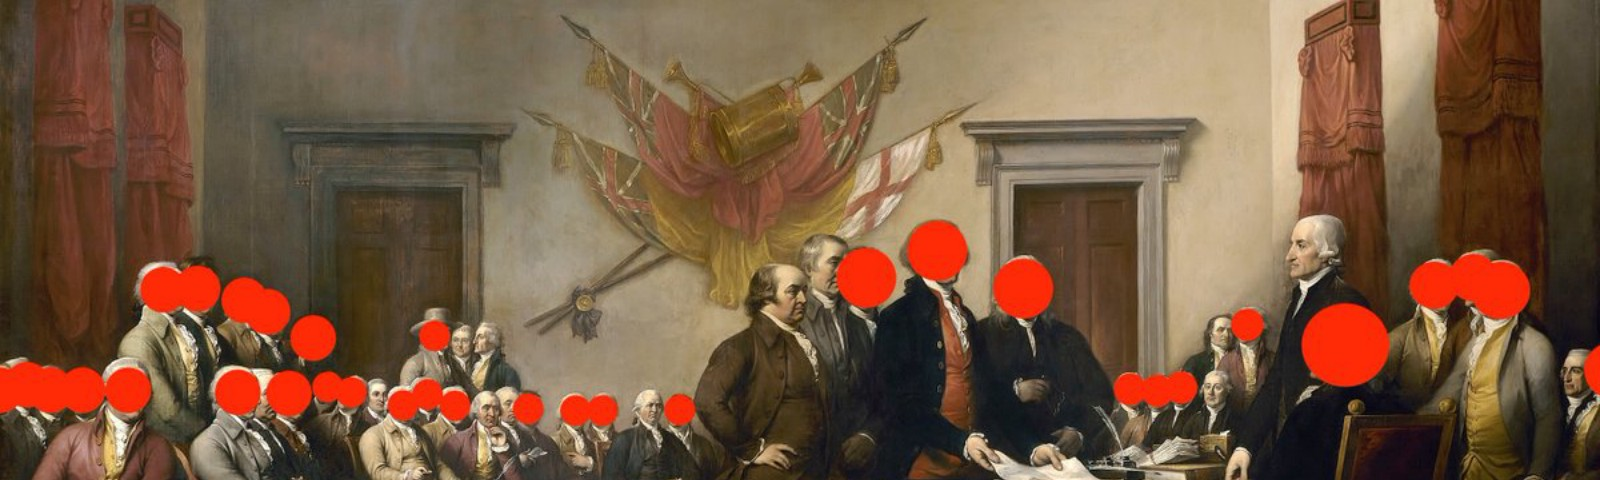 A historic painting of the Continental Congress with red dots covering the faces of most of the individuals depicted.